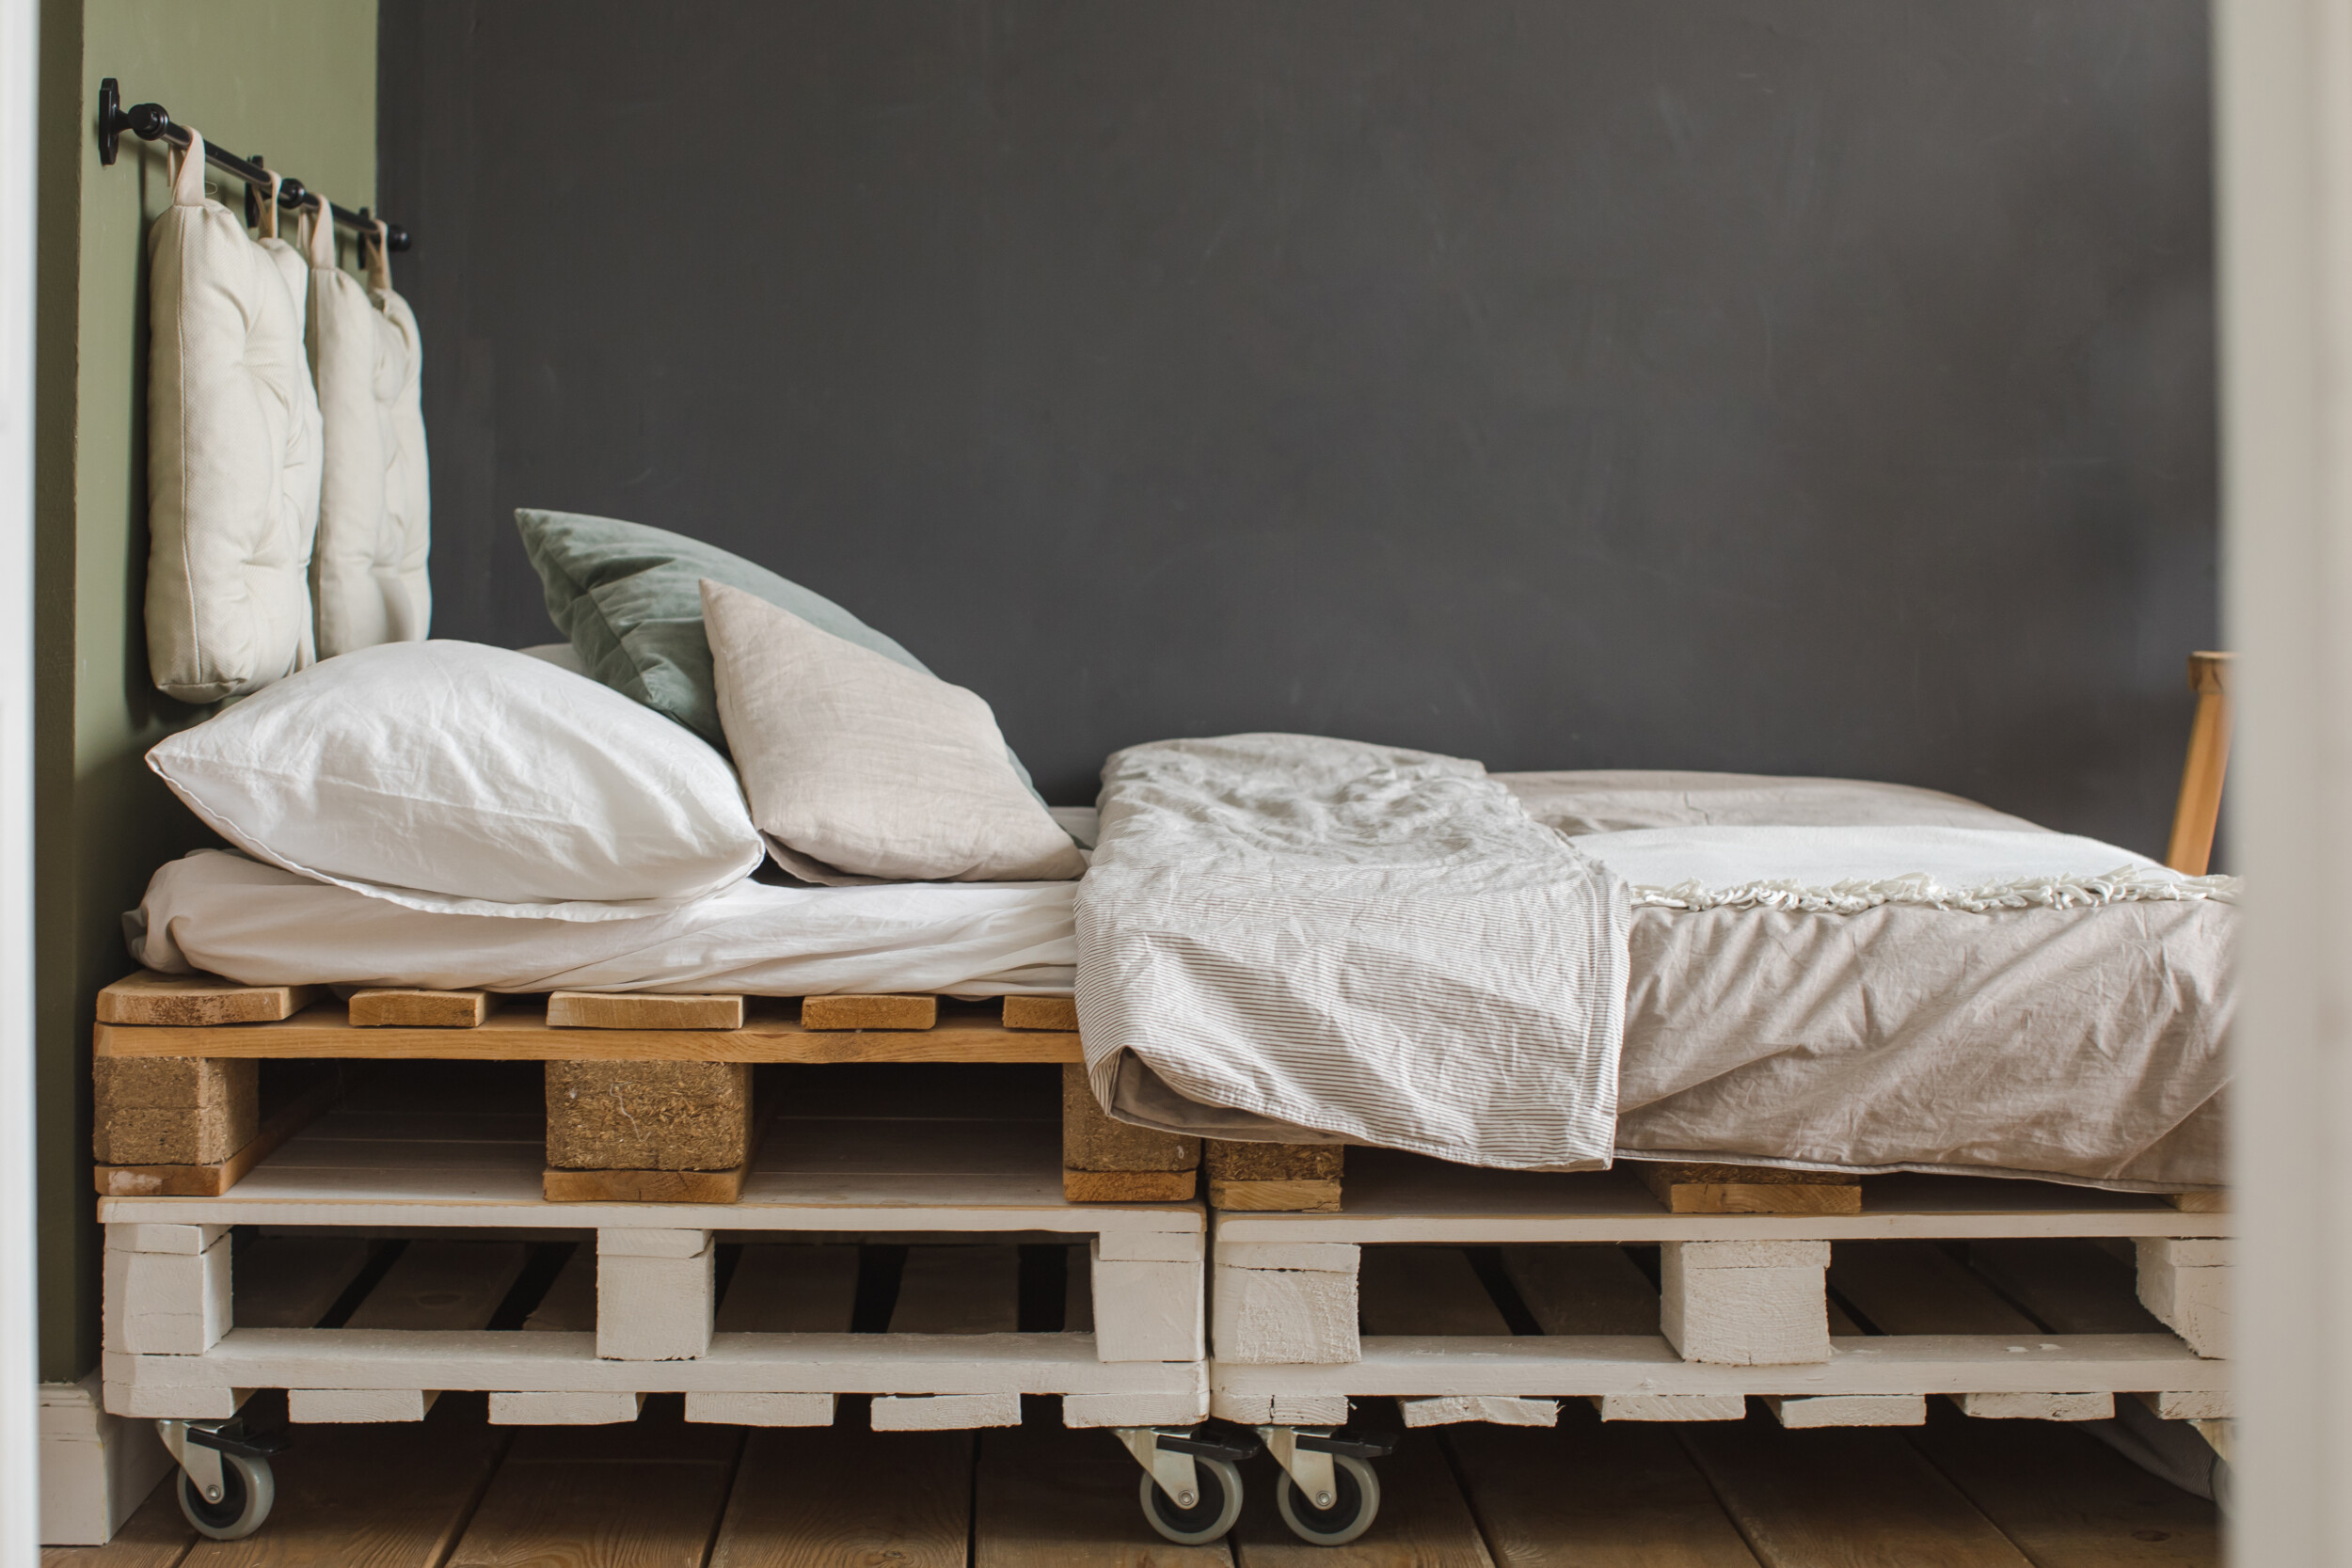 industrial style bedroom with recycled pallet bed